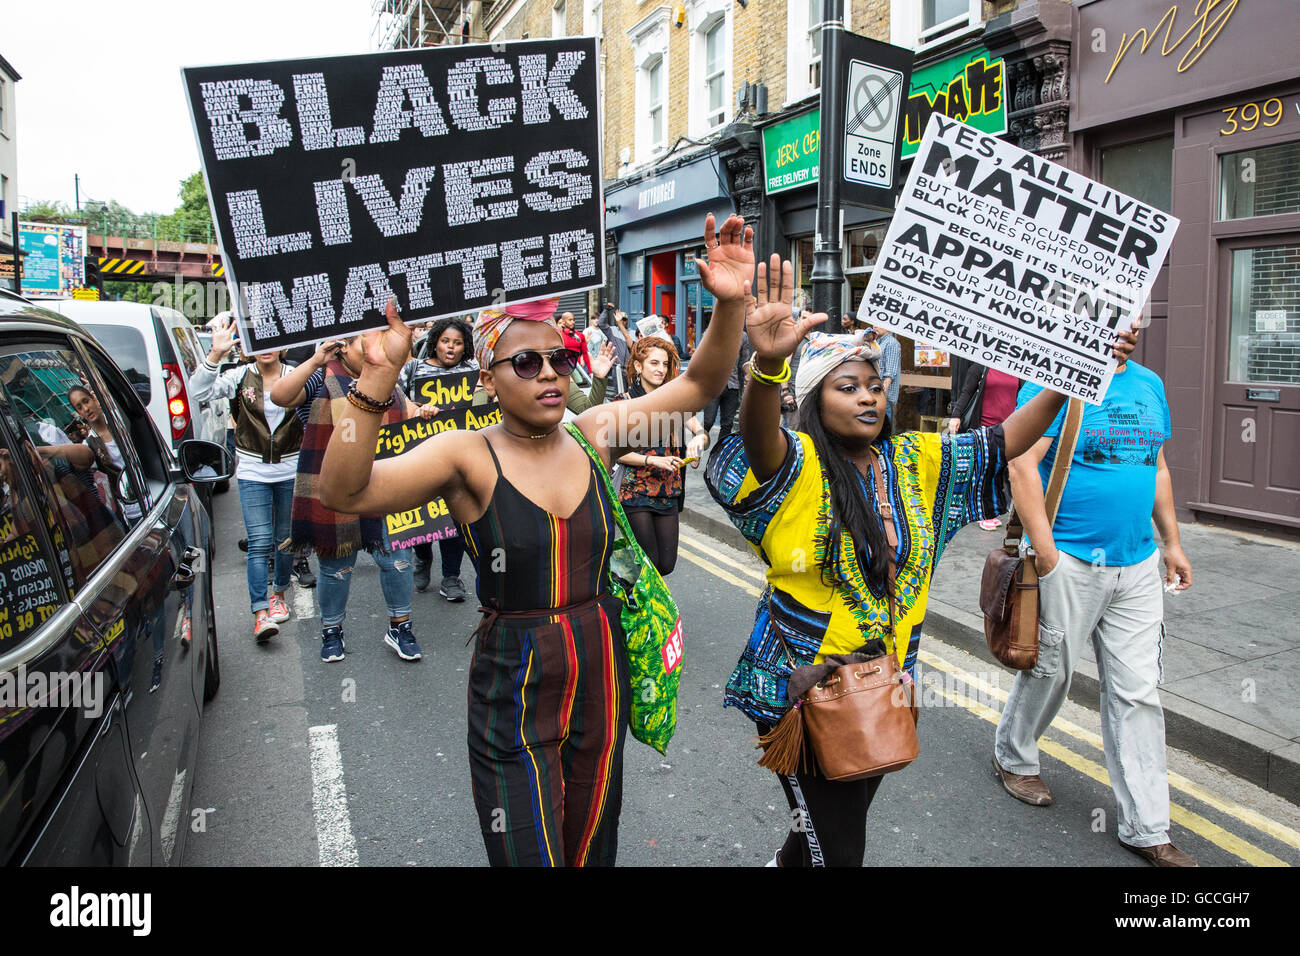 London, UK. 9th July, 2016. Campaigners from groups including Black Lives Matter UK march in Brixton in solidarity - Stock Image